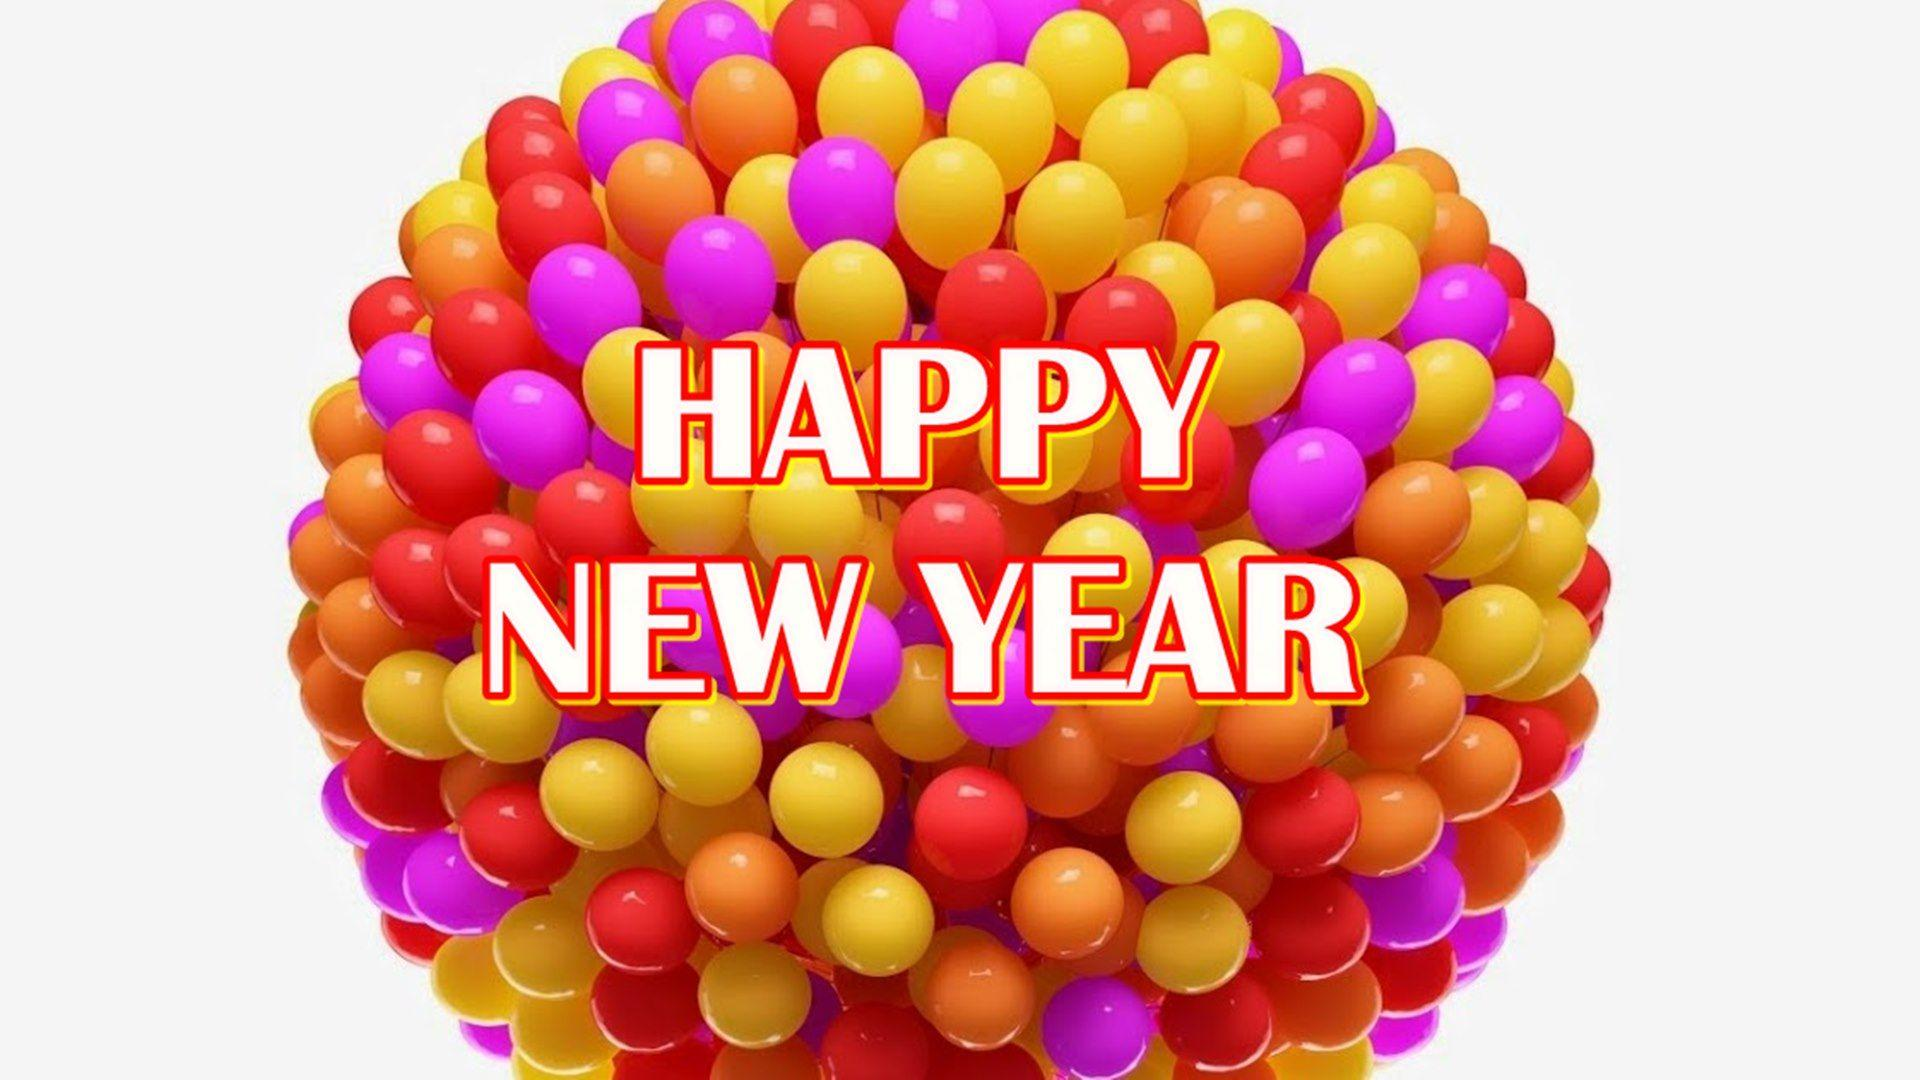 New Year Balloons Wallpapers - Wallpaper Cave